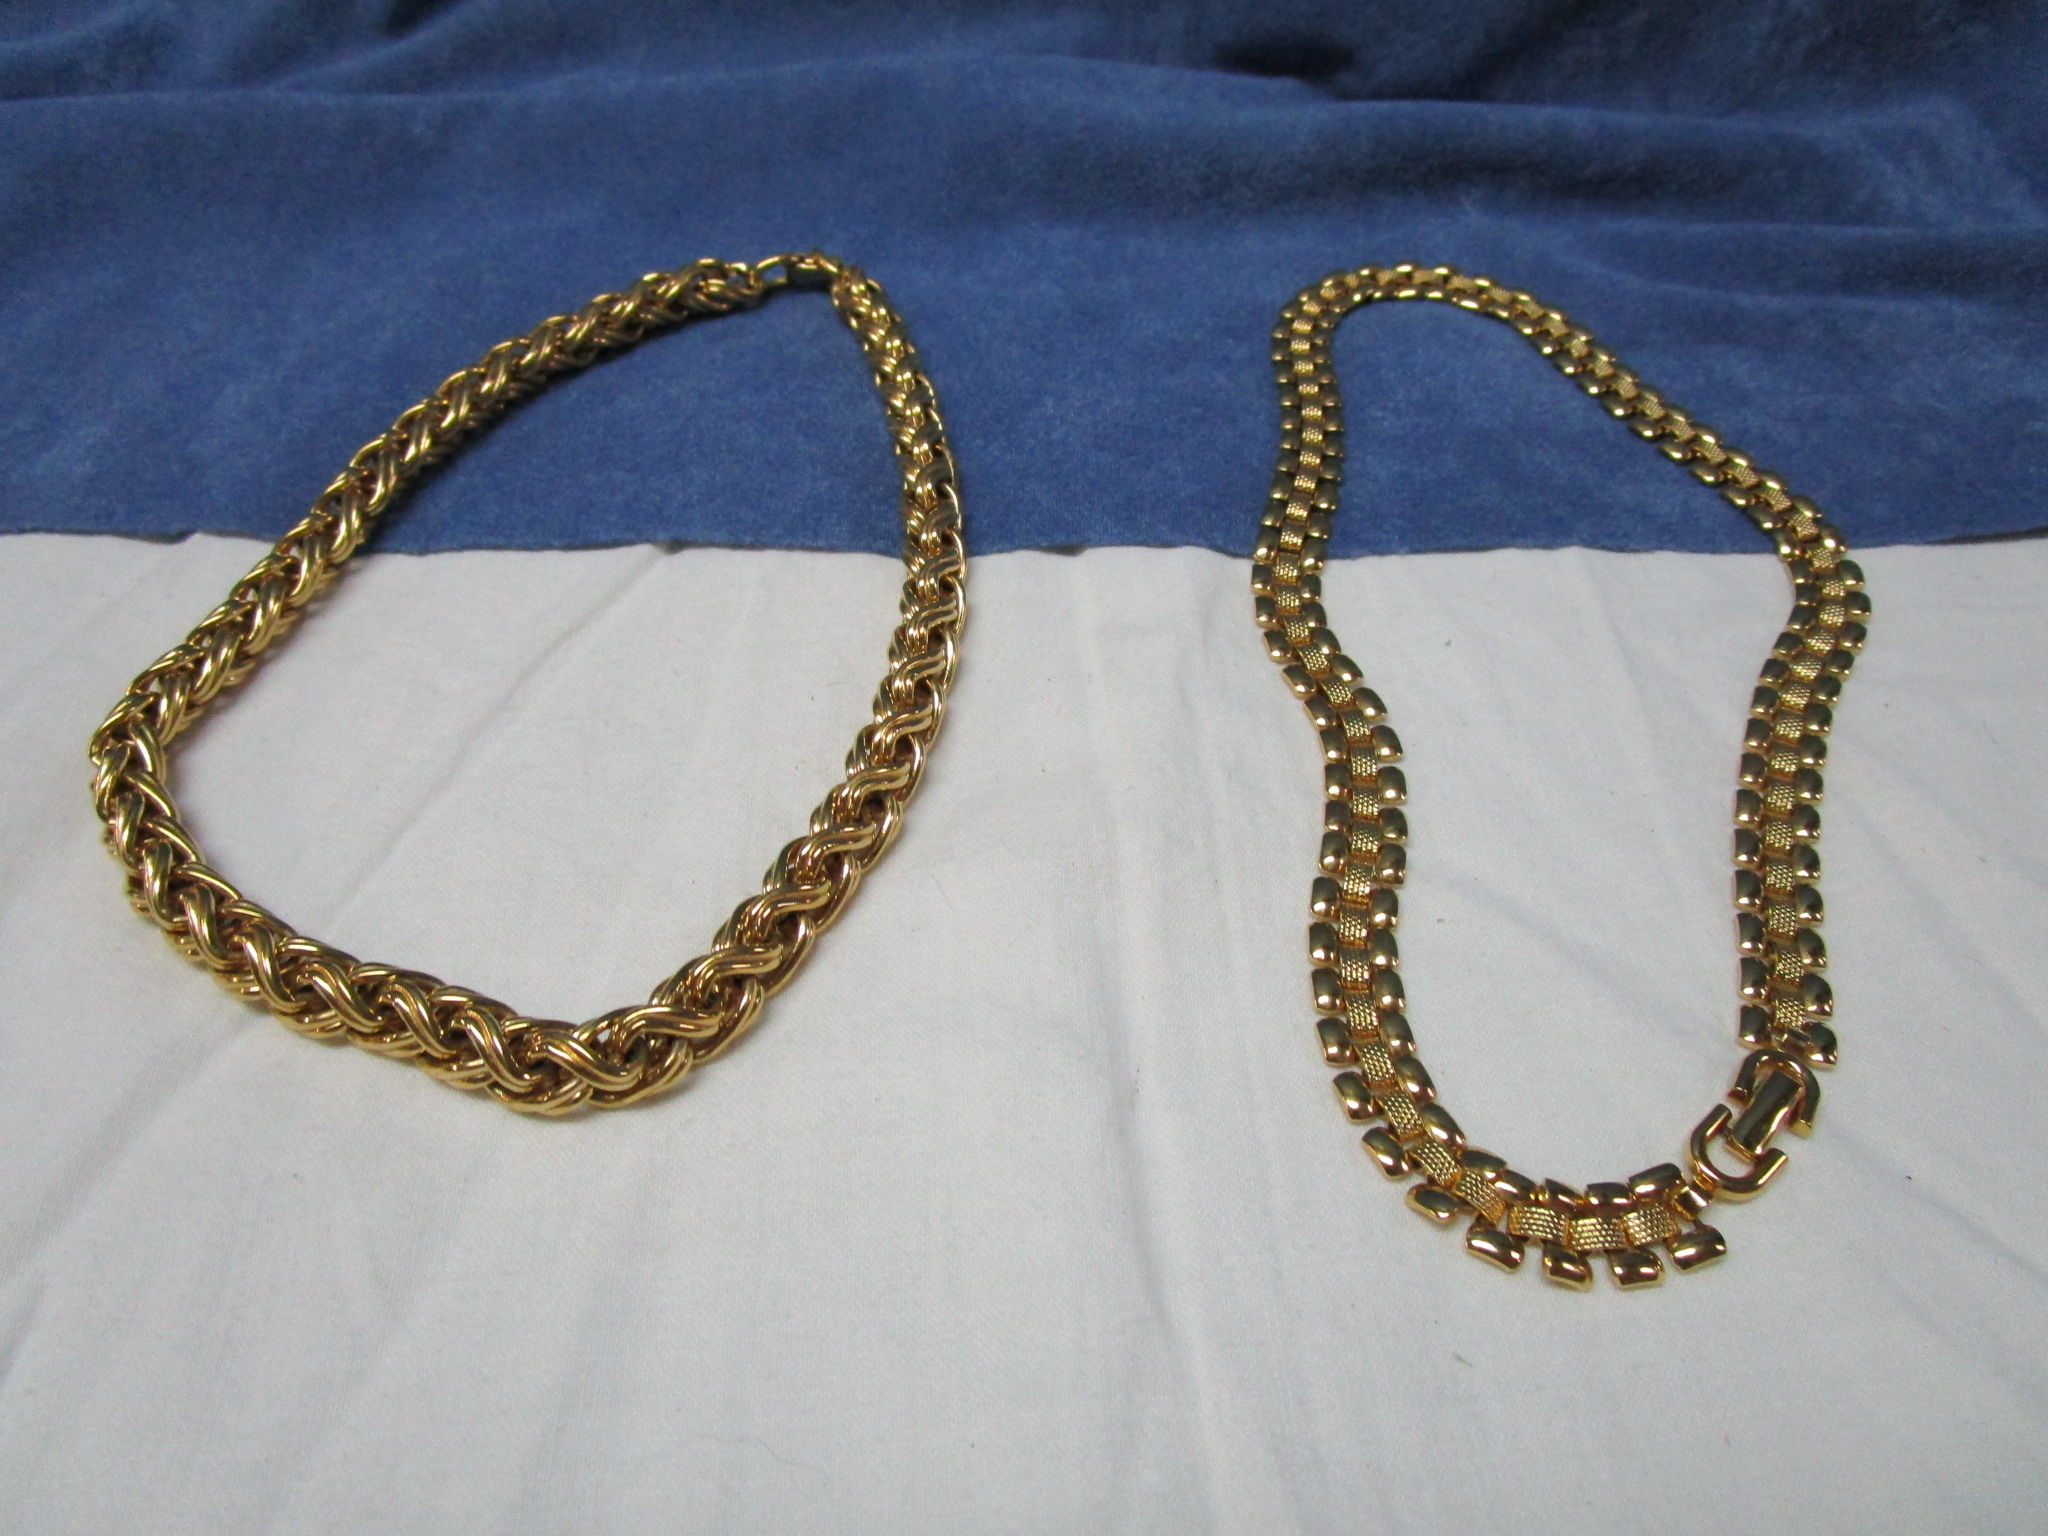 $17 - Monet Gold Splashed Multi-link Necklaces - Excellent